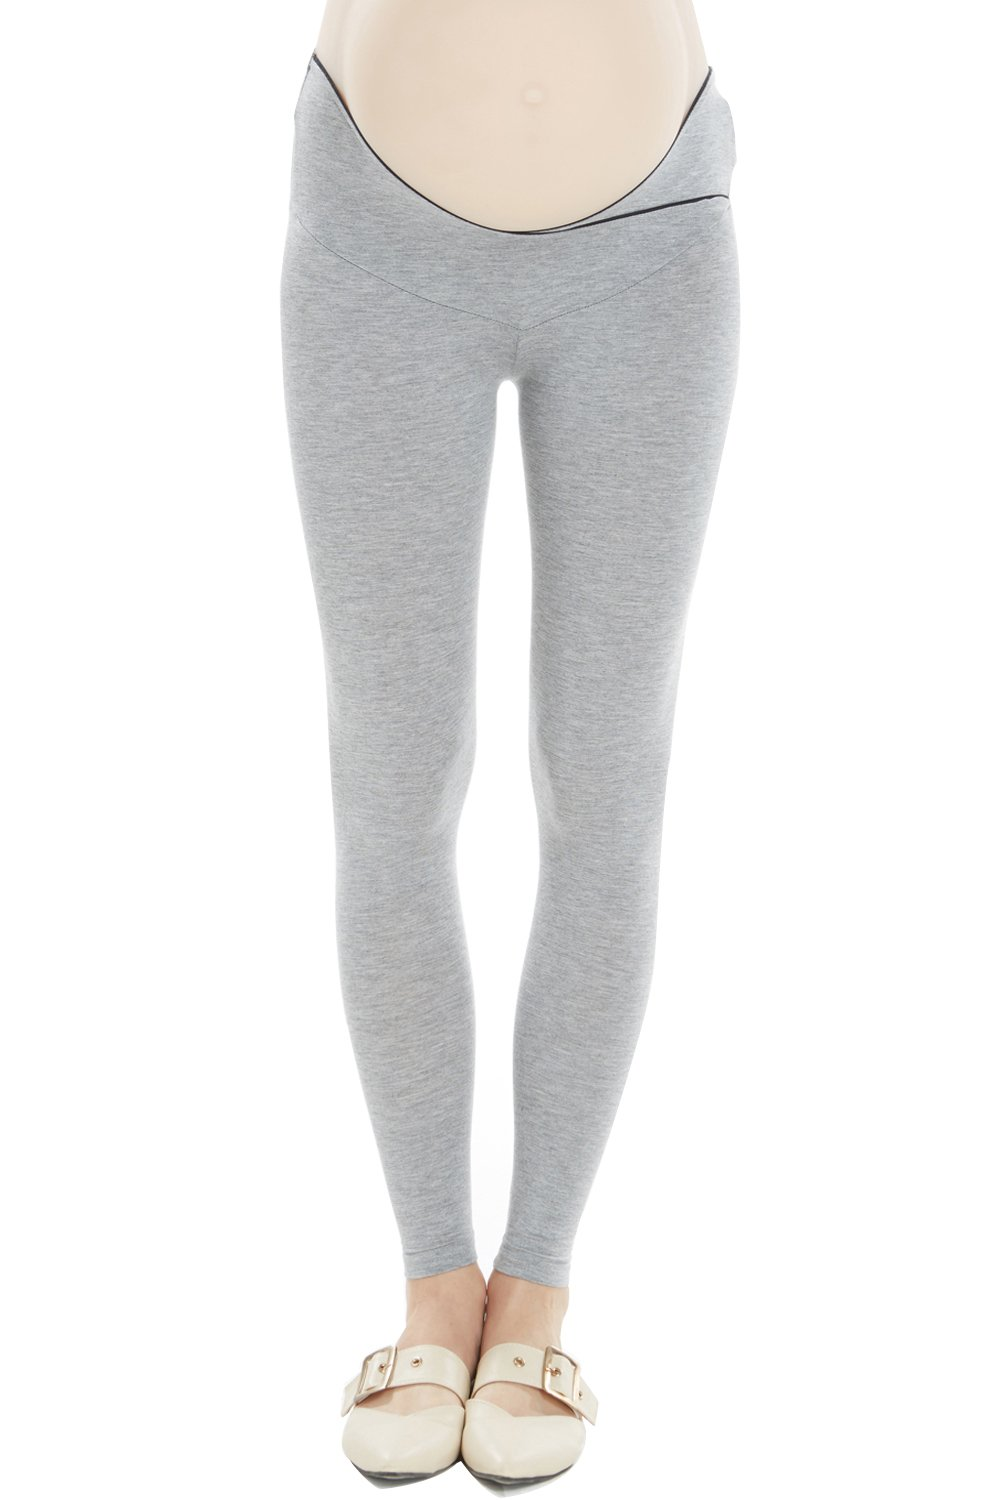 Cozyonme Maternity Pants Leggings Pregnancy Support Jeggings Capris Yoga Tights (Grey, XX-Large) by Cozyonme (Image #1)